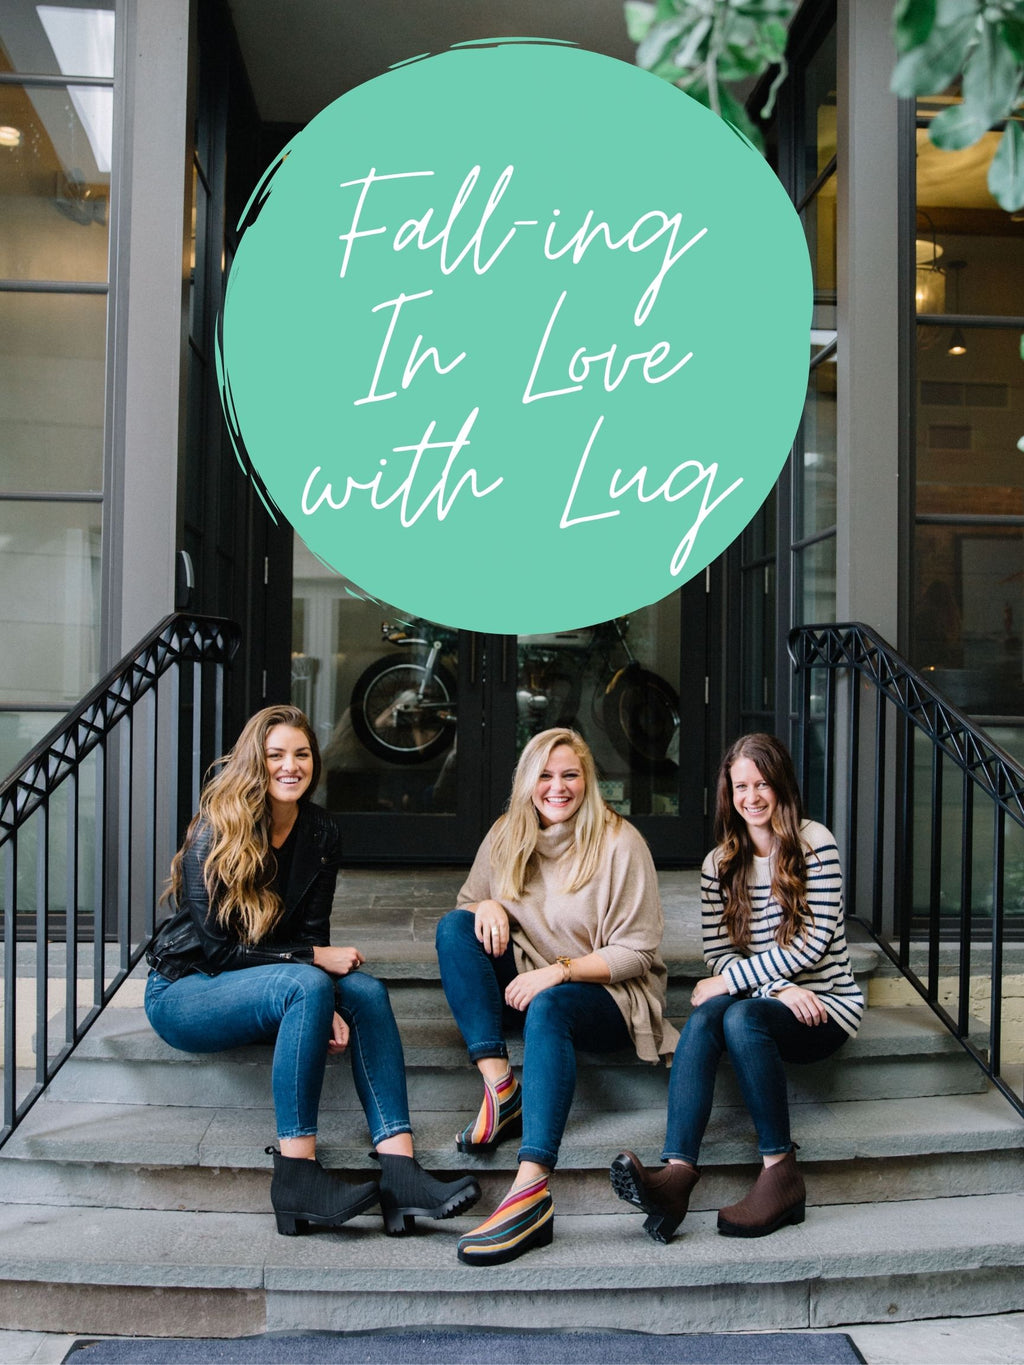 Fall-ing in Love with Lug! 🧡🍂